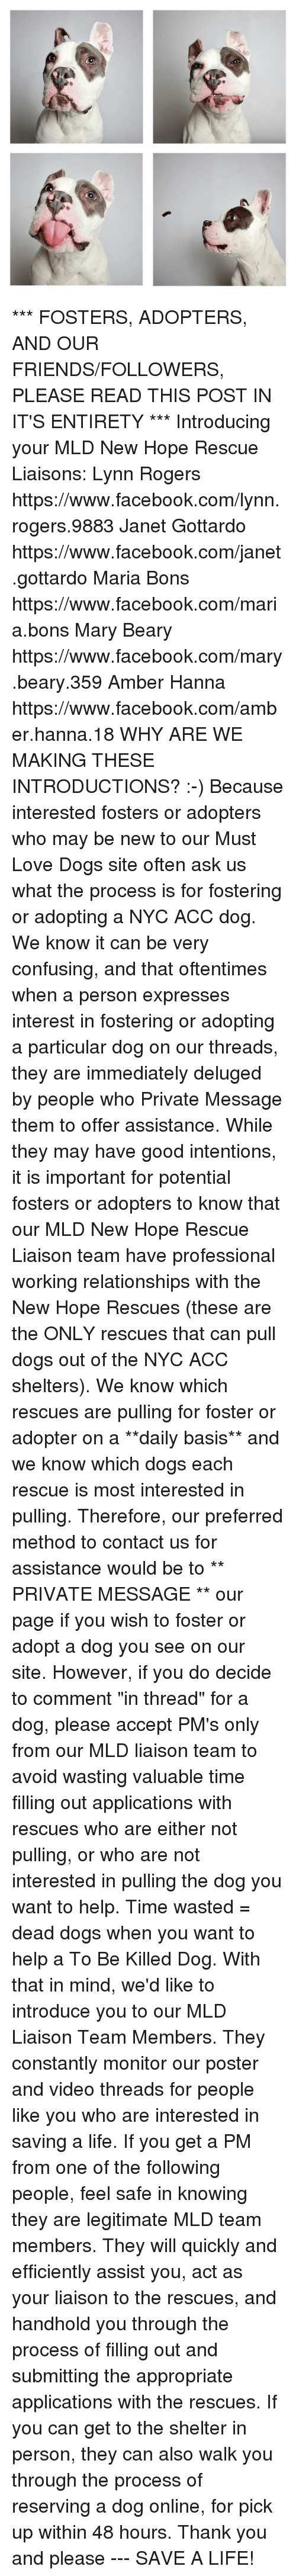 """Dogs, Facebook, and Friends: ***  FOSTERS, ADOPTERS, AND OUR FRIENDS/FOLLOWERS, PLEASE READ THIS POST IN IT'S ENTIRETY ***  Introducing your MLD New Hope Rescue Liaisons:  Lynn Rogers https://www.facebook.com/lynn.rogers.9883  Janet Gottardo https://www.facebook.com/janet.gottardo  Maria Bons https://www.facebook.com/maria.bons  Mary Beary https://www.facebook.com/mary.beary.359  Amber Hanna https://www.facebook.com/amber.hanna.18  WHY ARE WE MAKING THESE INTRODUCTIONS?  :-)  Because interested fosters or adopters who may be new to our Must Love Dogs site often ask us what the process is for fostering or adopting a NYC ACC dog. We know it can be very confusing, and that oftentimes when a person expresses interest in fostering or adopting a particular dog on our threads, they are immediately deluged by people who Private Message them to offer assistance.   While they may have good intentions, it is important for potential fosters or adopters to know that our MLD New Hope Rescue Liaison team have professional working relationships with the New Hope Rescues (these are the ONLY rescues that can pull dogs out of the NYC ACC shelters). We know which rescues are pulling for foster or adopter on a **daily basis** and we know which dogs each rescue is most interested in pulling.   Therefore, our preferred method to contact us for assistance would be to ** PRIVATE MESSAGE ** our page if you wish to foster or adopt a dog you see on our site. However, if you do decide to comment """"in thread"""" for a dog, please accept PM's only from our MLD liaison team to avoid wasting valuable time filling out applications with rescues who are either not pulling, or who are not interested in pulling the dog you want to help. Time wasted = dead dogs when you want to help a To Be Killed Dog.  With that in mind, we'd like to introduce you to our MLD Liaison Team Members. They constantly monitor our poster and video threads for people like you who are interested in saving a life. If you get a PM fro"""